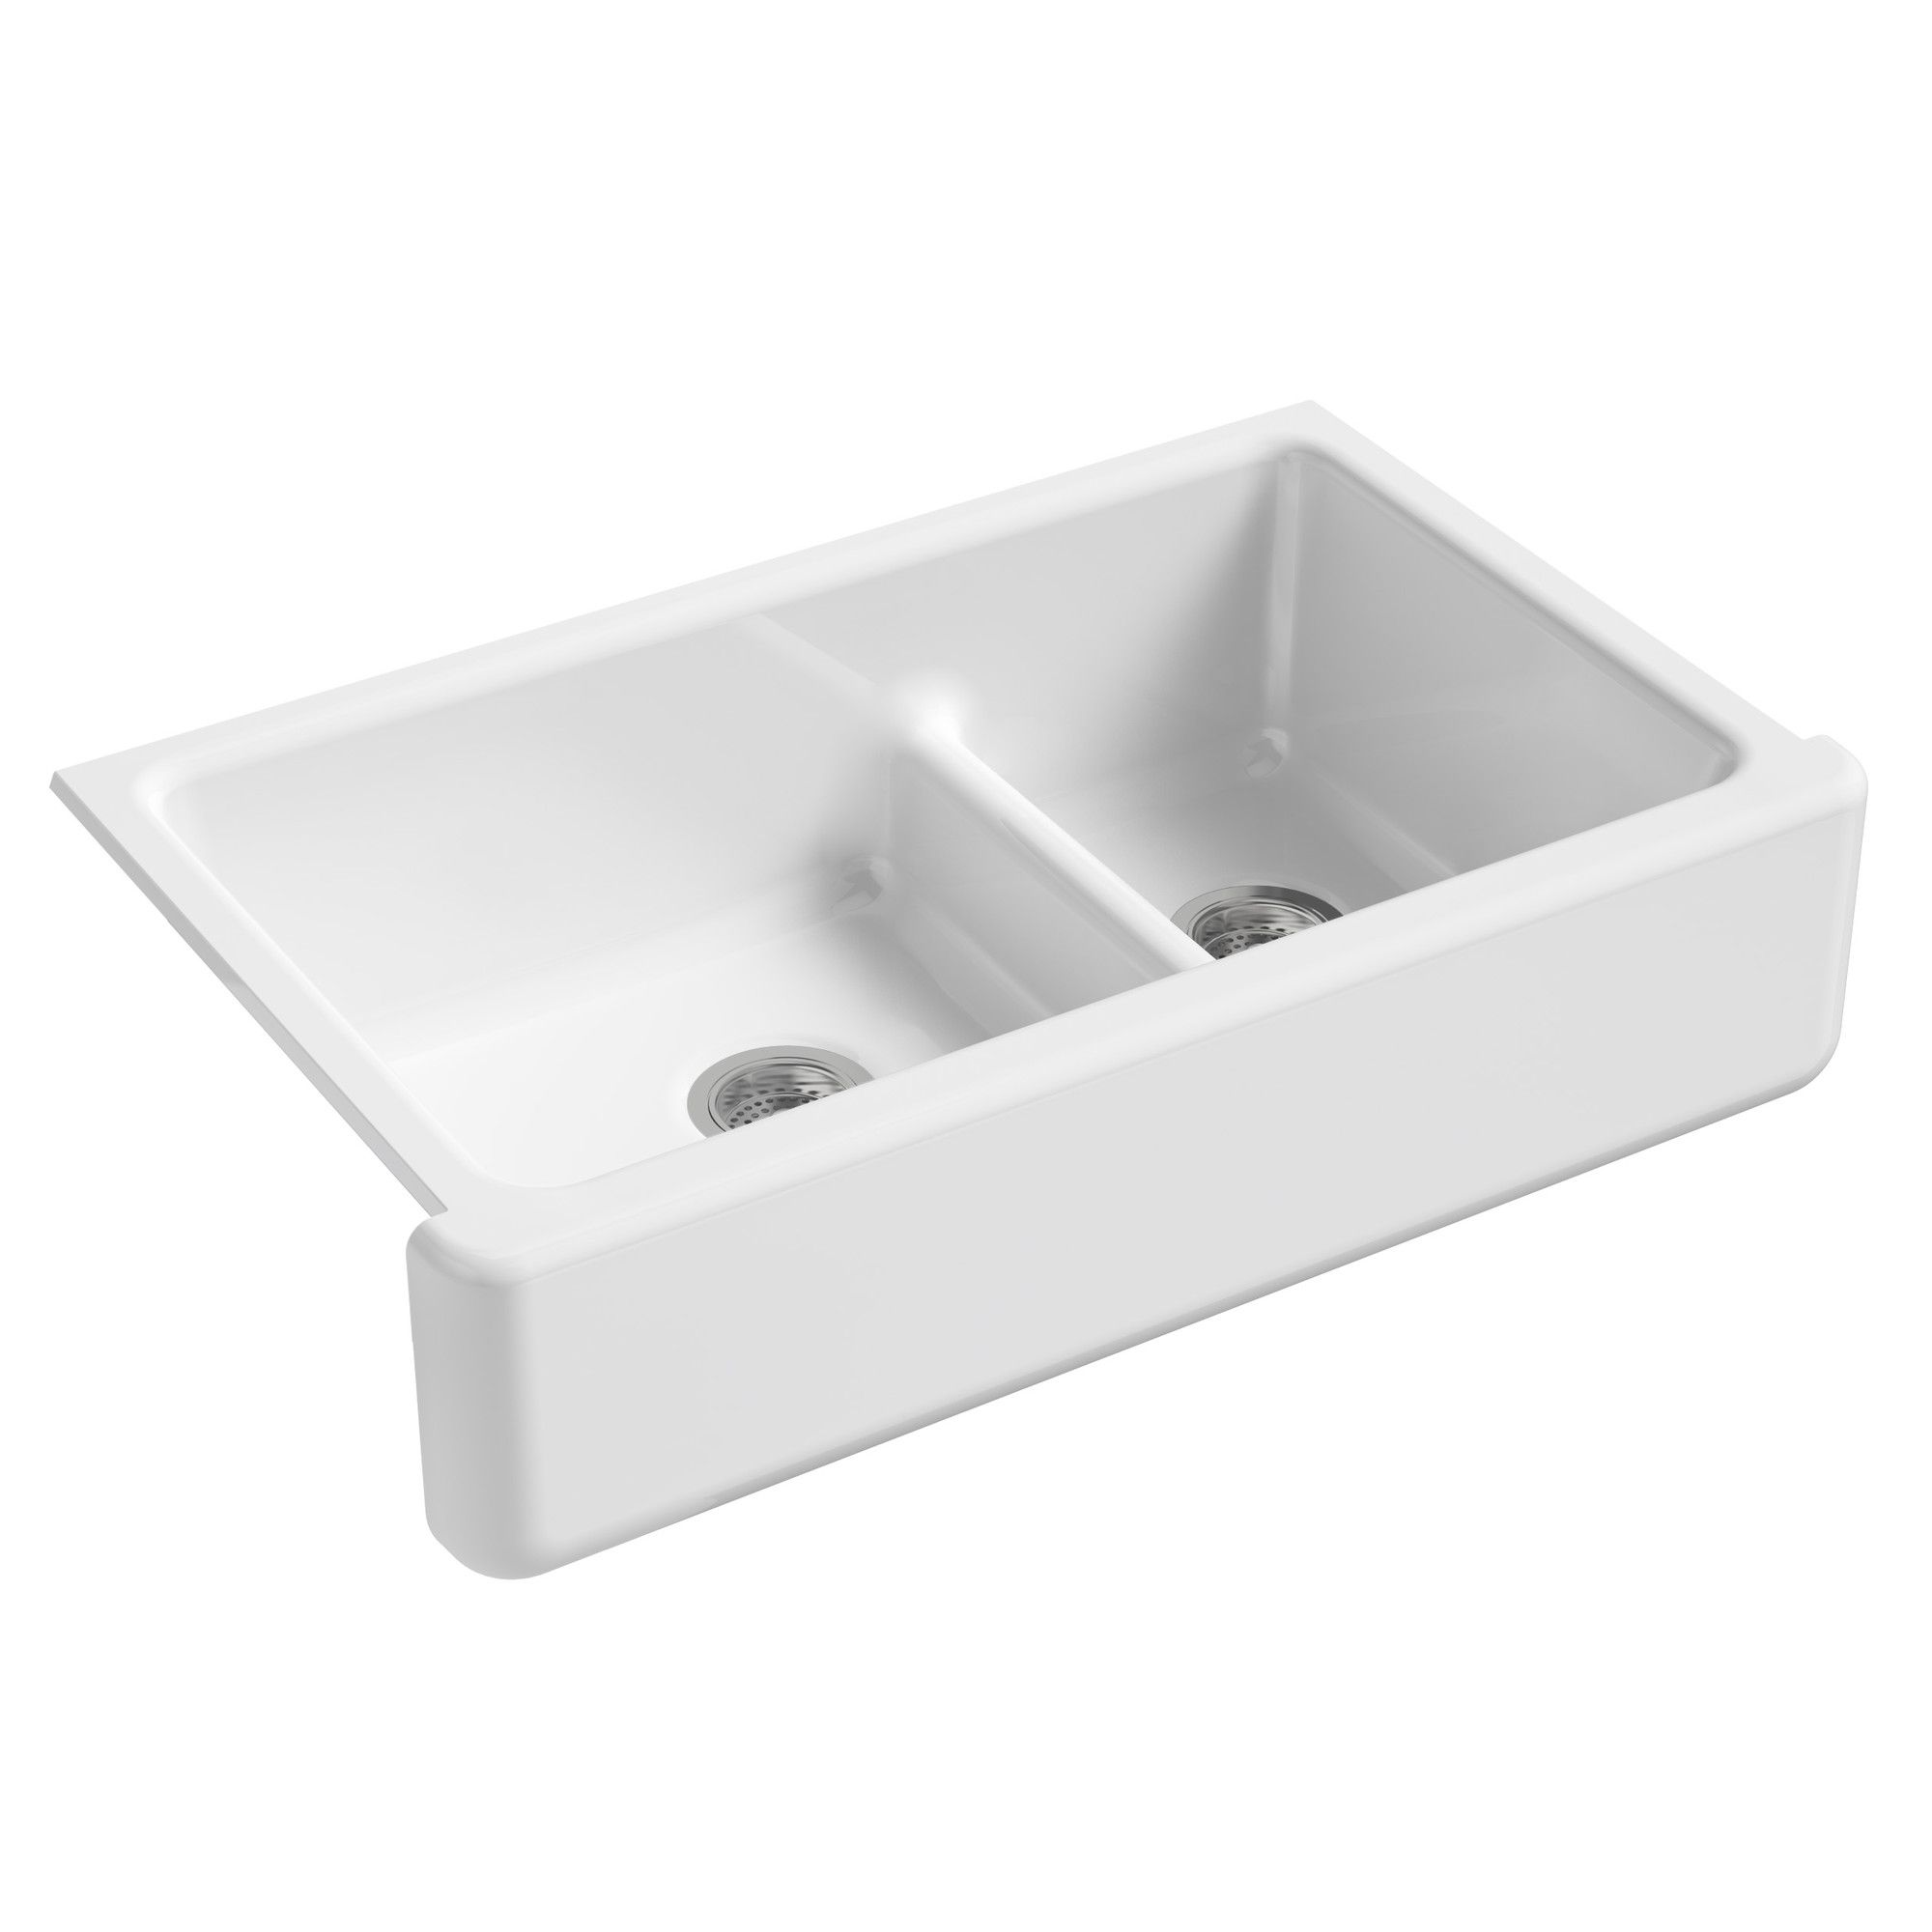 Whitehaven Smart Divide 36 L X 22 W Farmhouse Double Bowl Kitchen Sink With Tall Apron Cast Iron Kitchen Sinks Cast Iron Farmhouse Sink Double Bowl Kitchen Sink